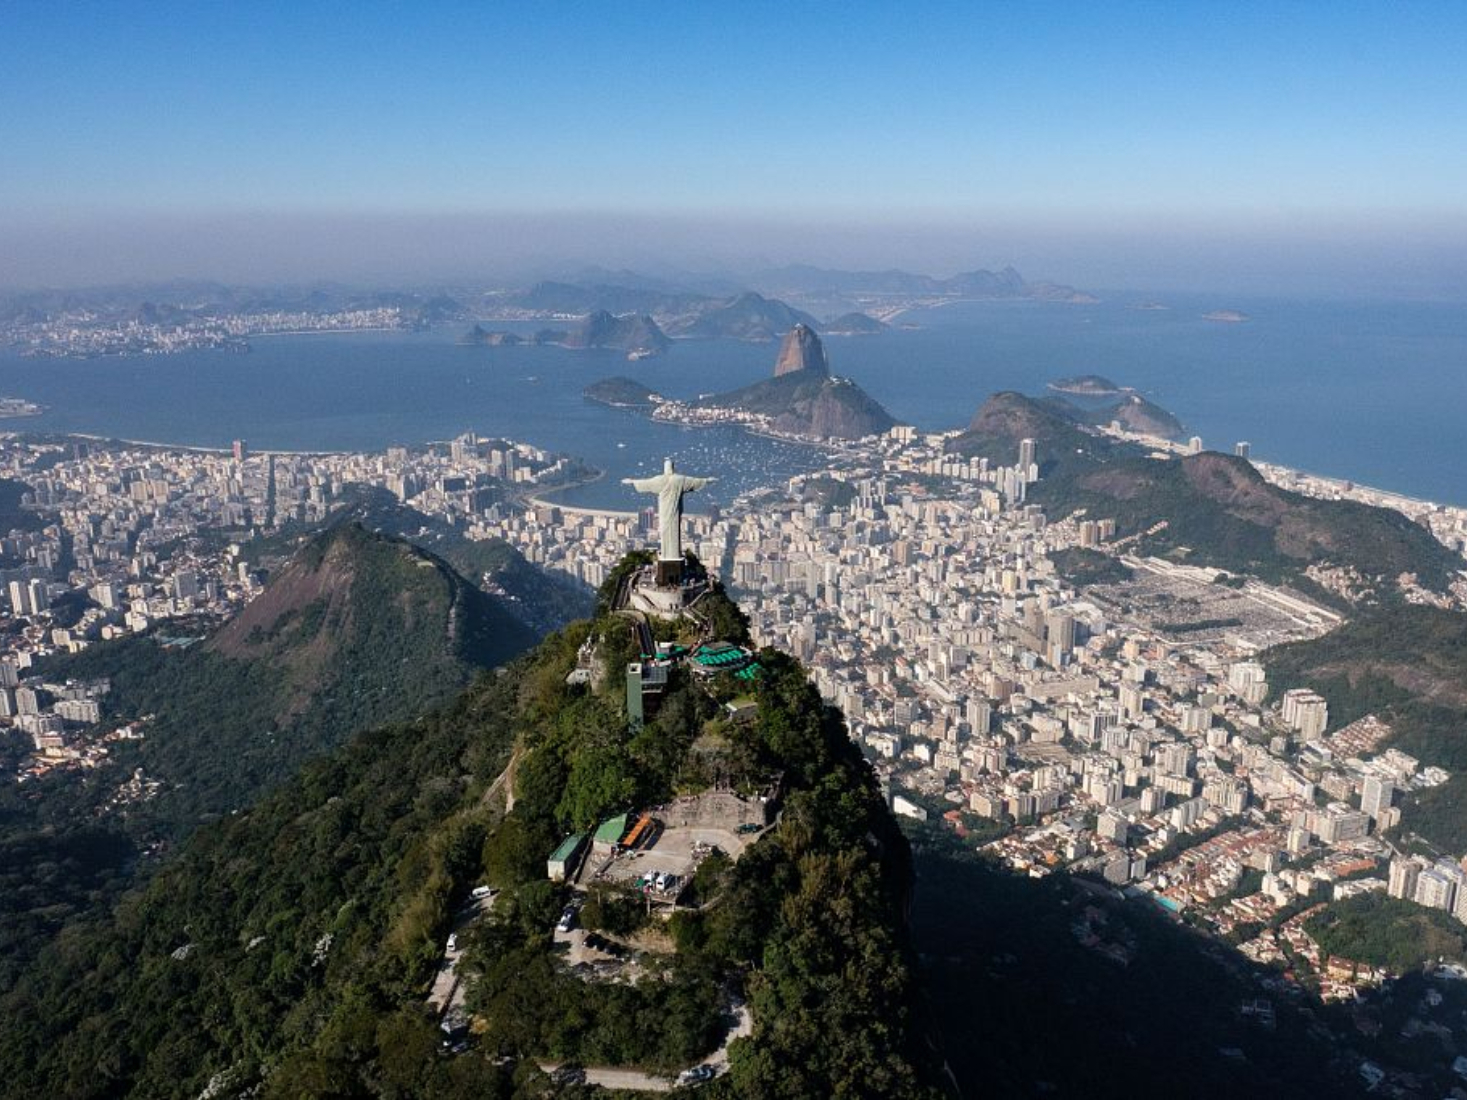 Brazil no longer requires visas from Chinese tourists, businessmen